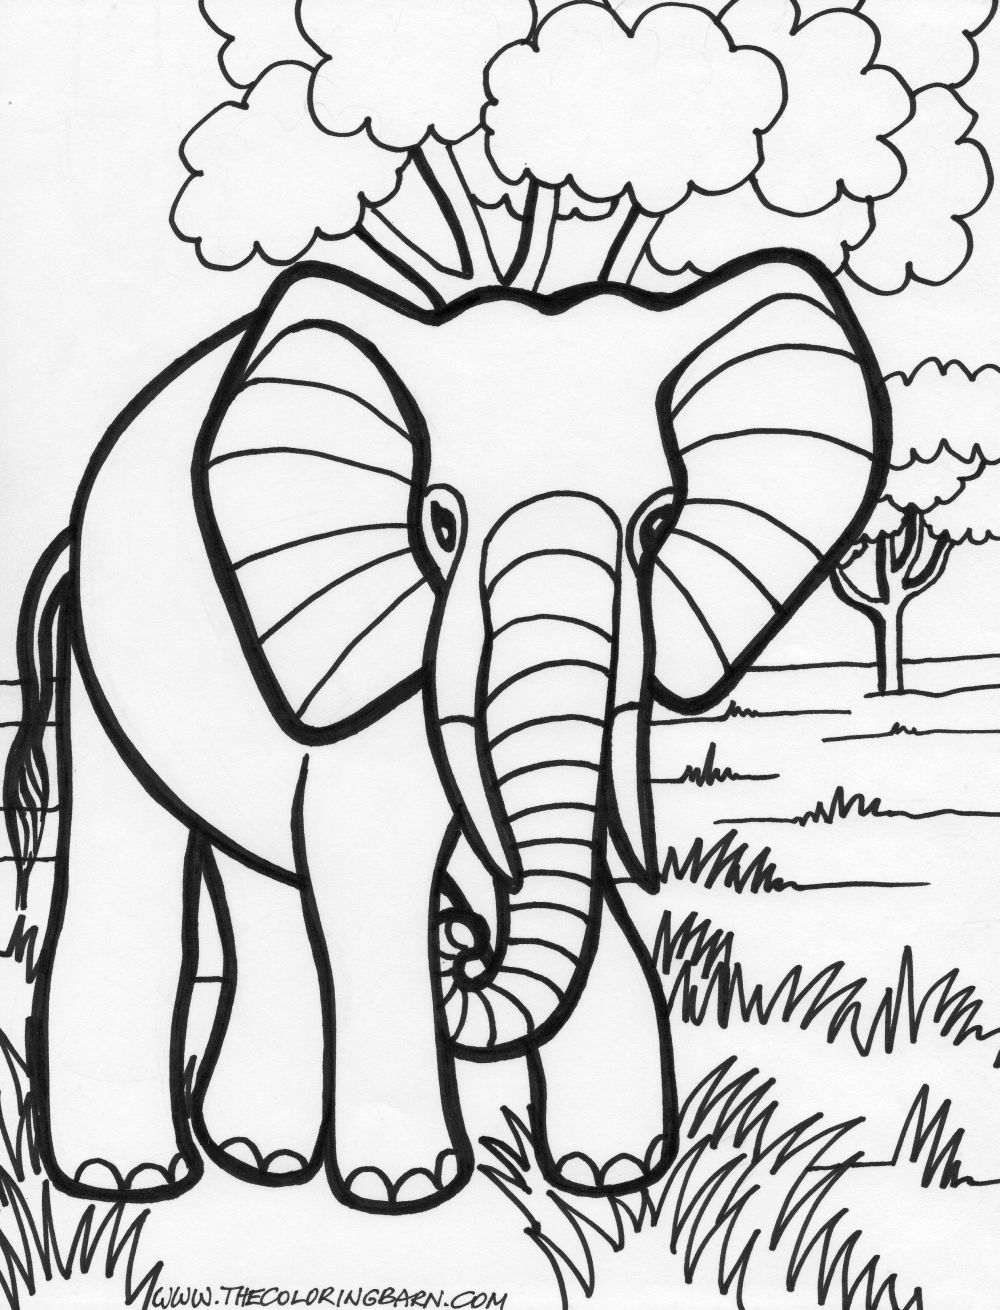 coloring pictures elephant transmissionpress 14 elephant coloring pages for kids pictures elephant coloring